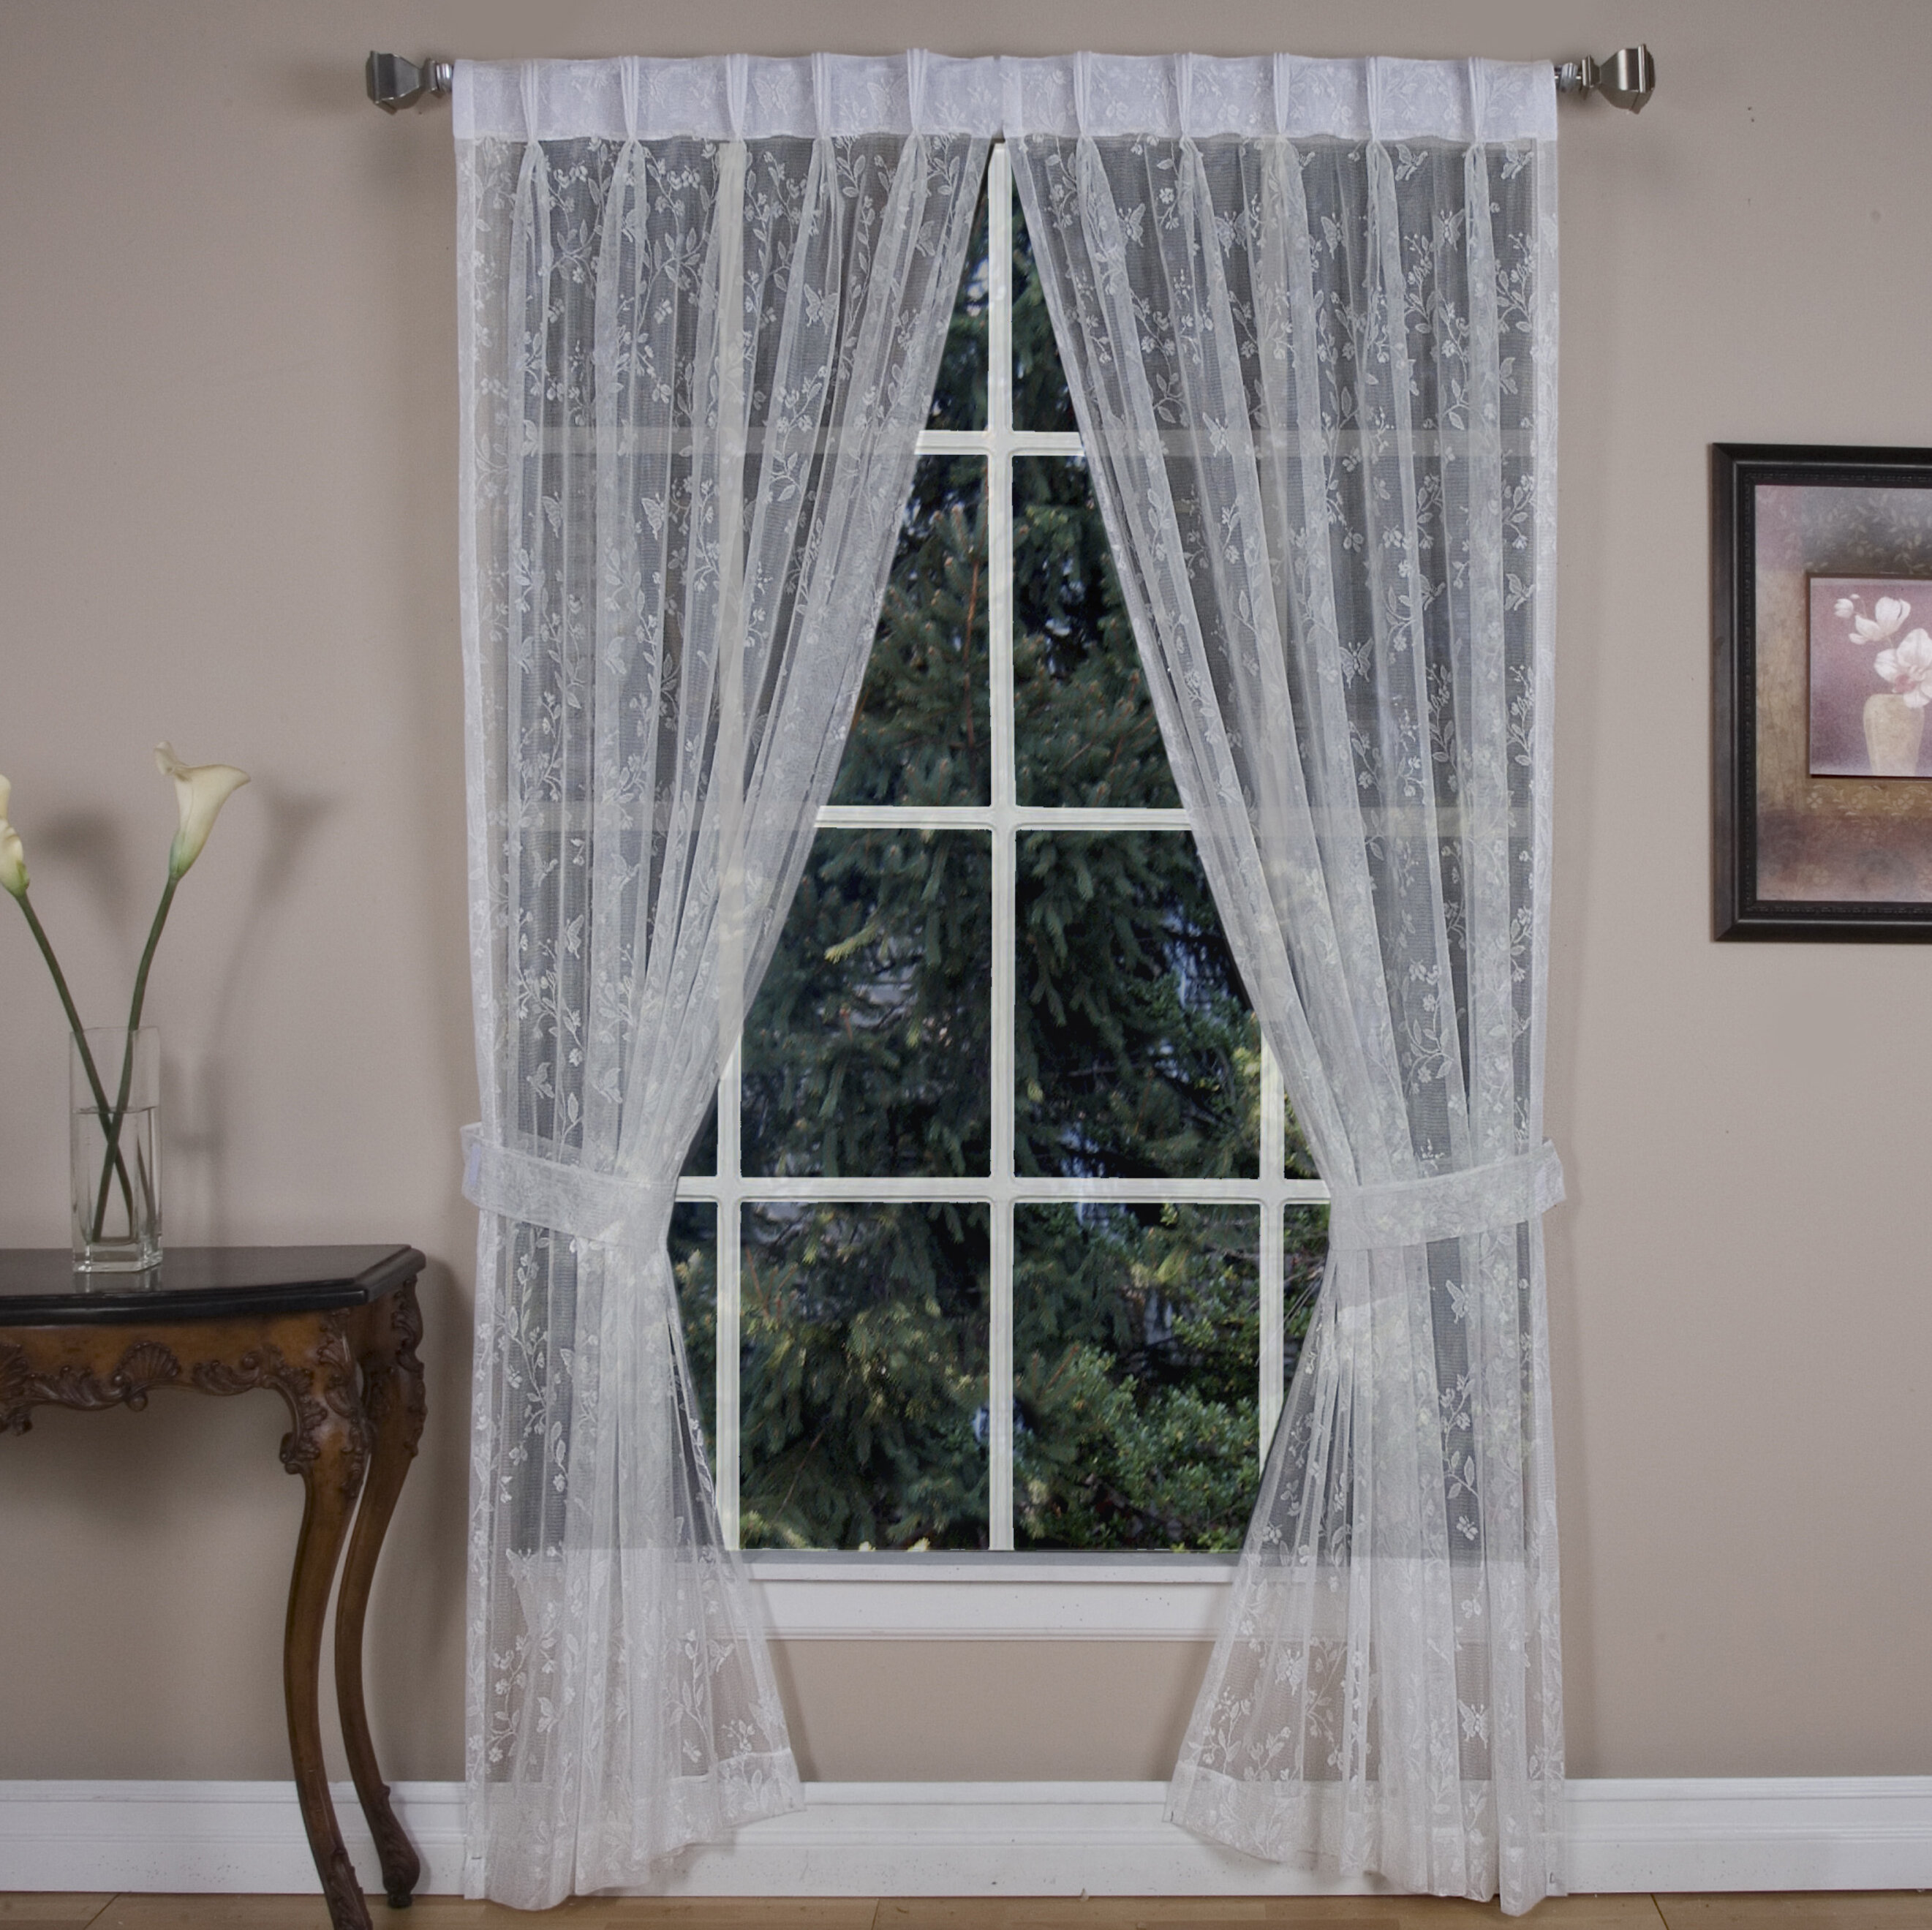 orders pinch overstock windsor panel traverse drapes pleat achim on rod product free over shipping curtain home garden for pleated